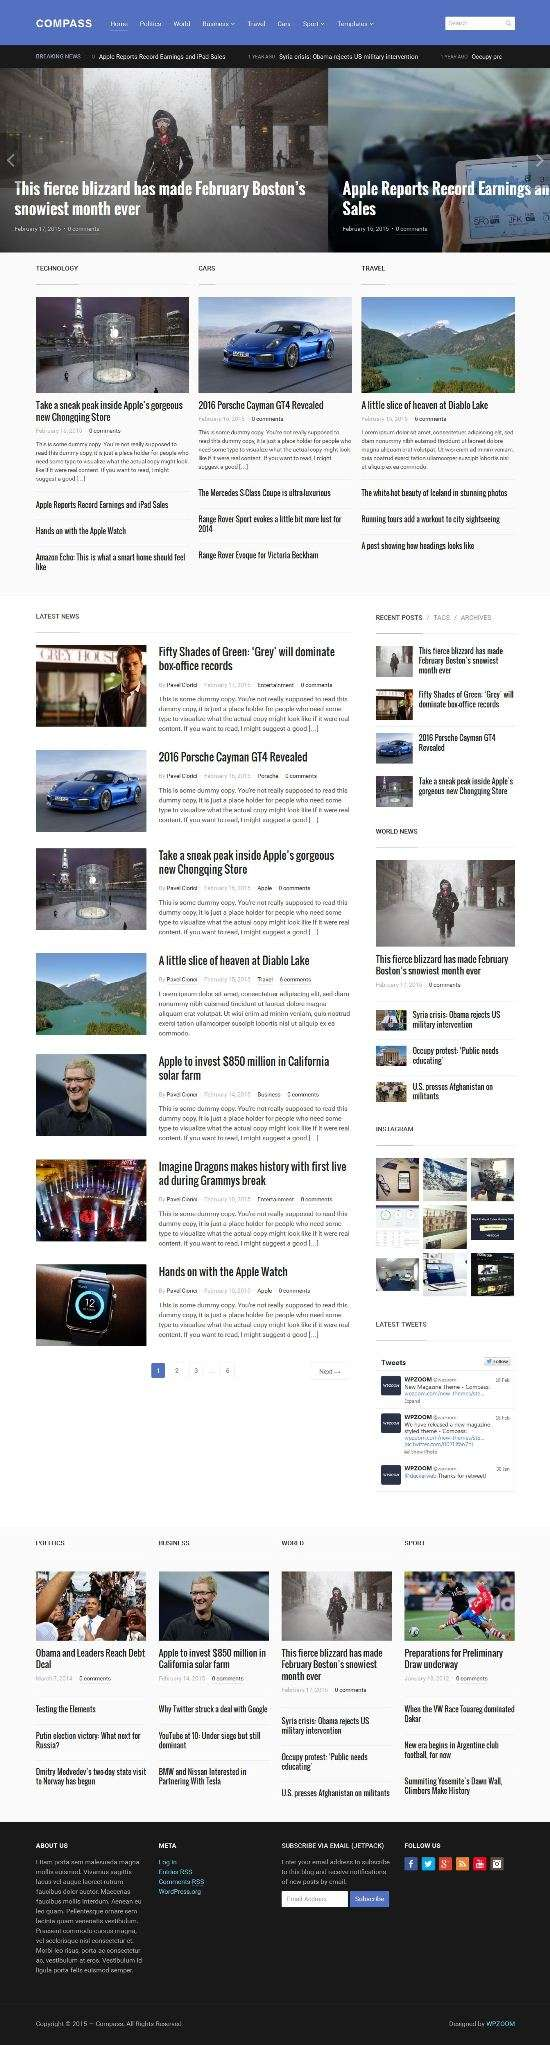 compass wpzoom wordpress 01 - Wpzoom Compass WordPress Theme